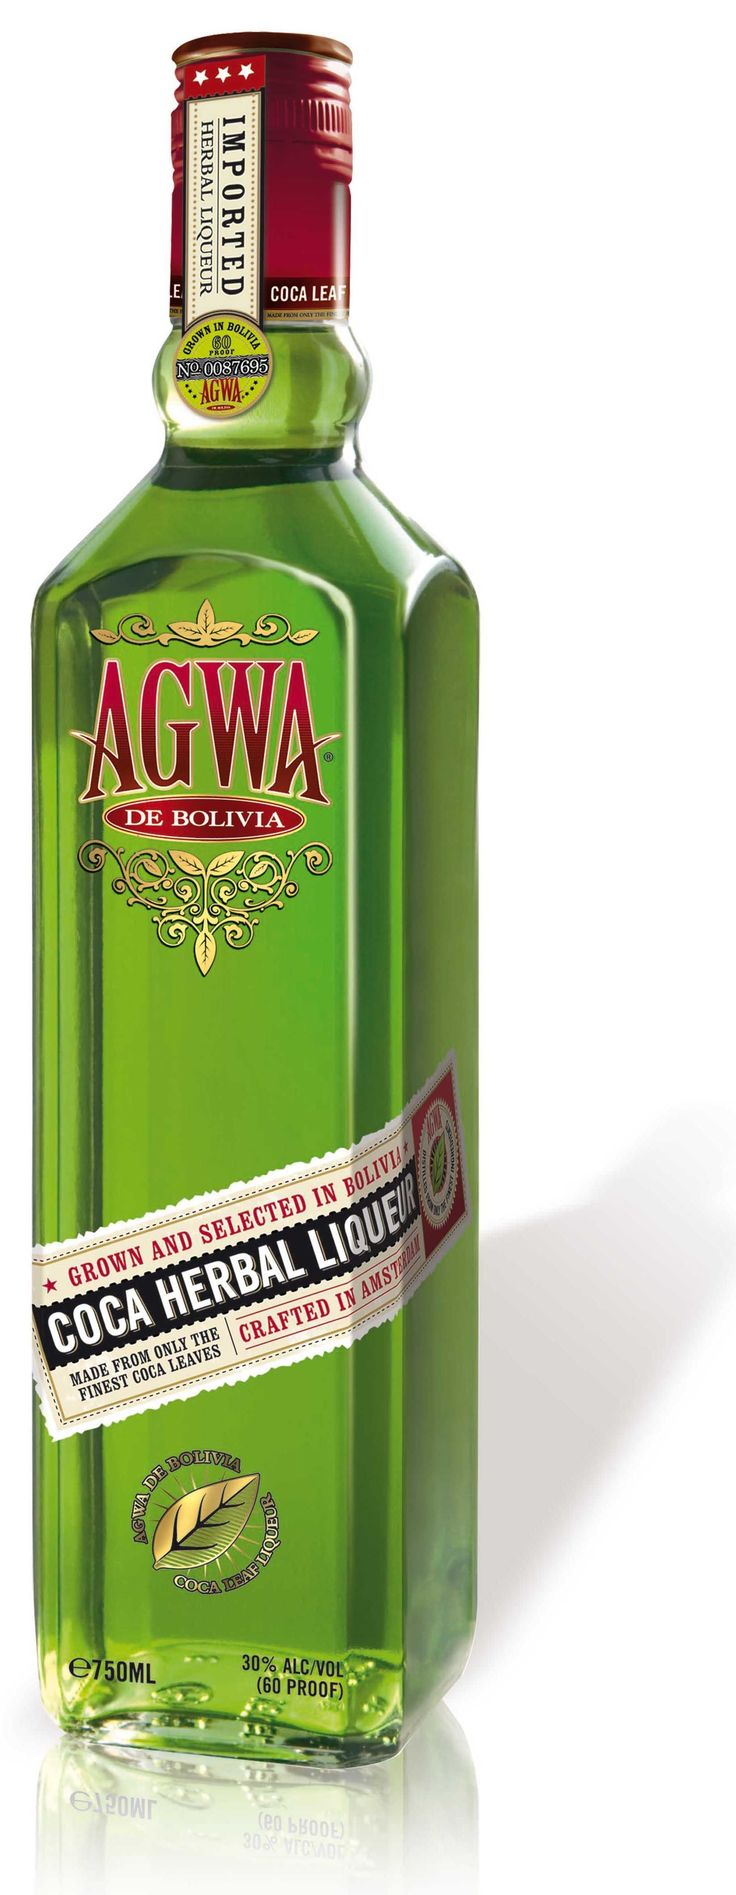 """AGWA. Bolivian Coca Leaf liqueurs are said to date back to the De Medici family with Rudyard Kipling going as far as to state that they were made """"from the clippings and shavings of angels' wings"""". Agwa, distilled in the Netherlands, adds Chinese Green Tea, African Mint, Amazonian and Argentinean Guarana, and Ginseng to their (de-cocainised) Bolivian Coca Leaf as part of 37 different herbs and botanicals."""